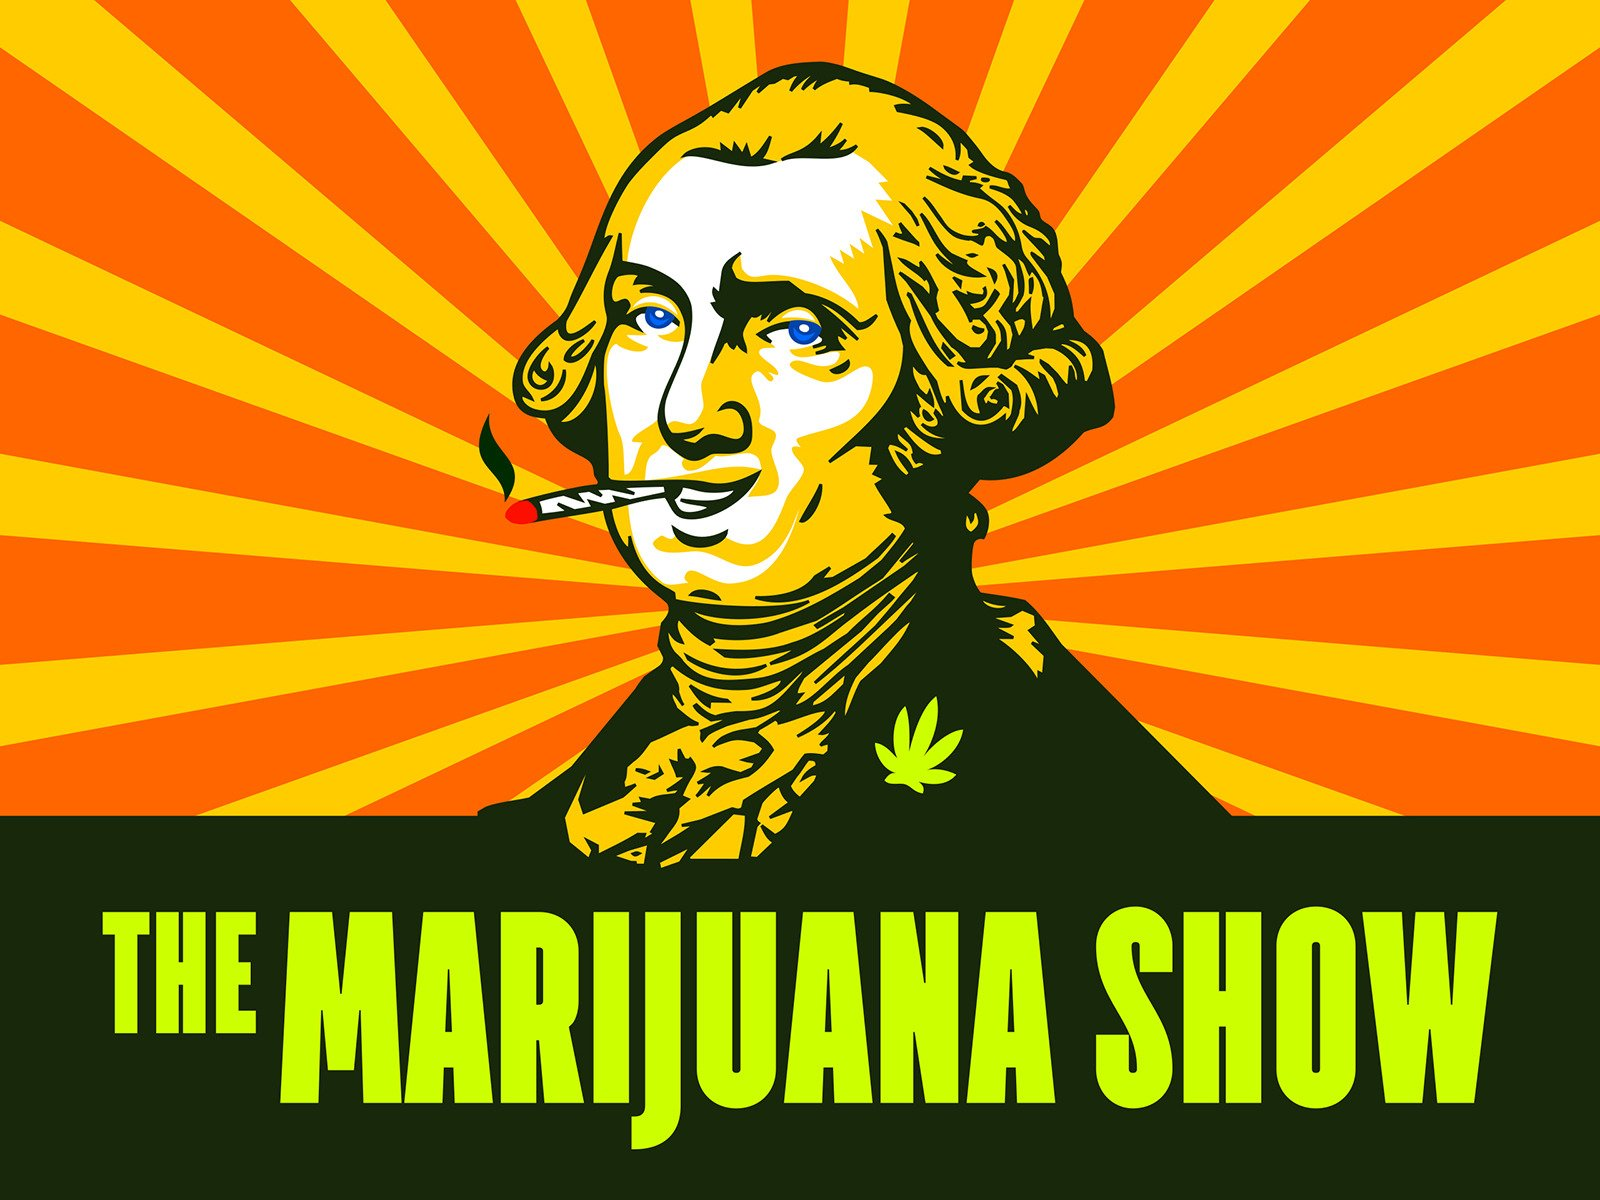 Meet the 3 men who became millionaires and billionaires thanks to marijuana